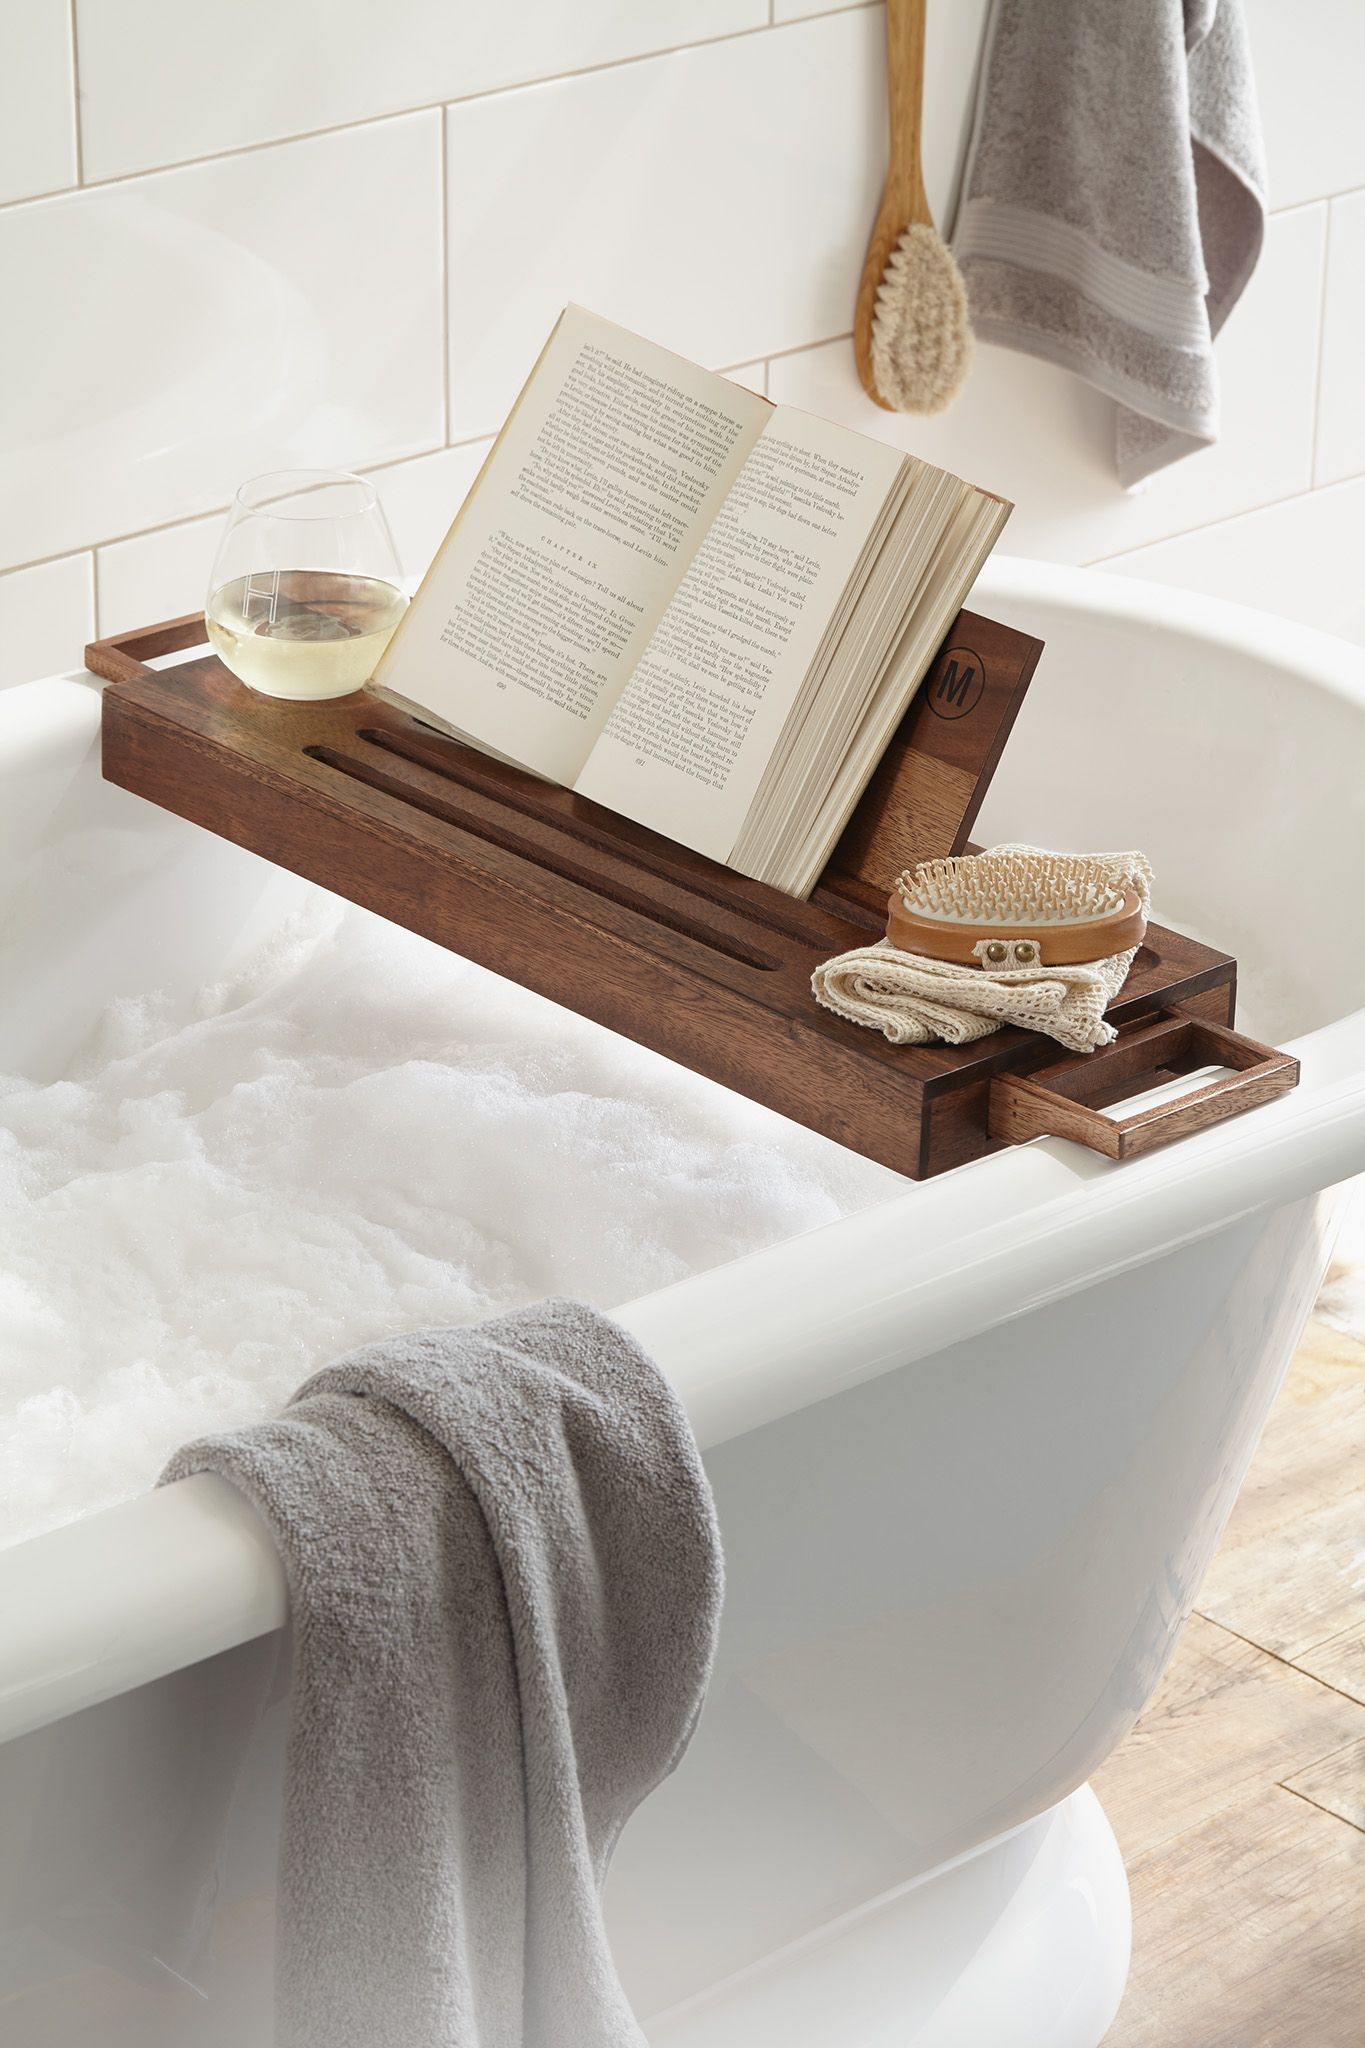 This tub/ tray. Bathroom inspo. Relaxation time. Only I would ...